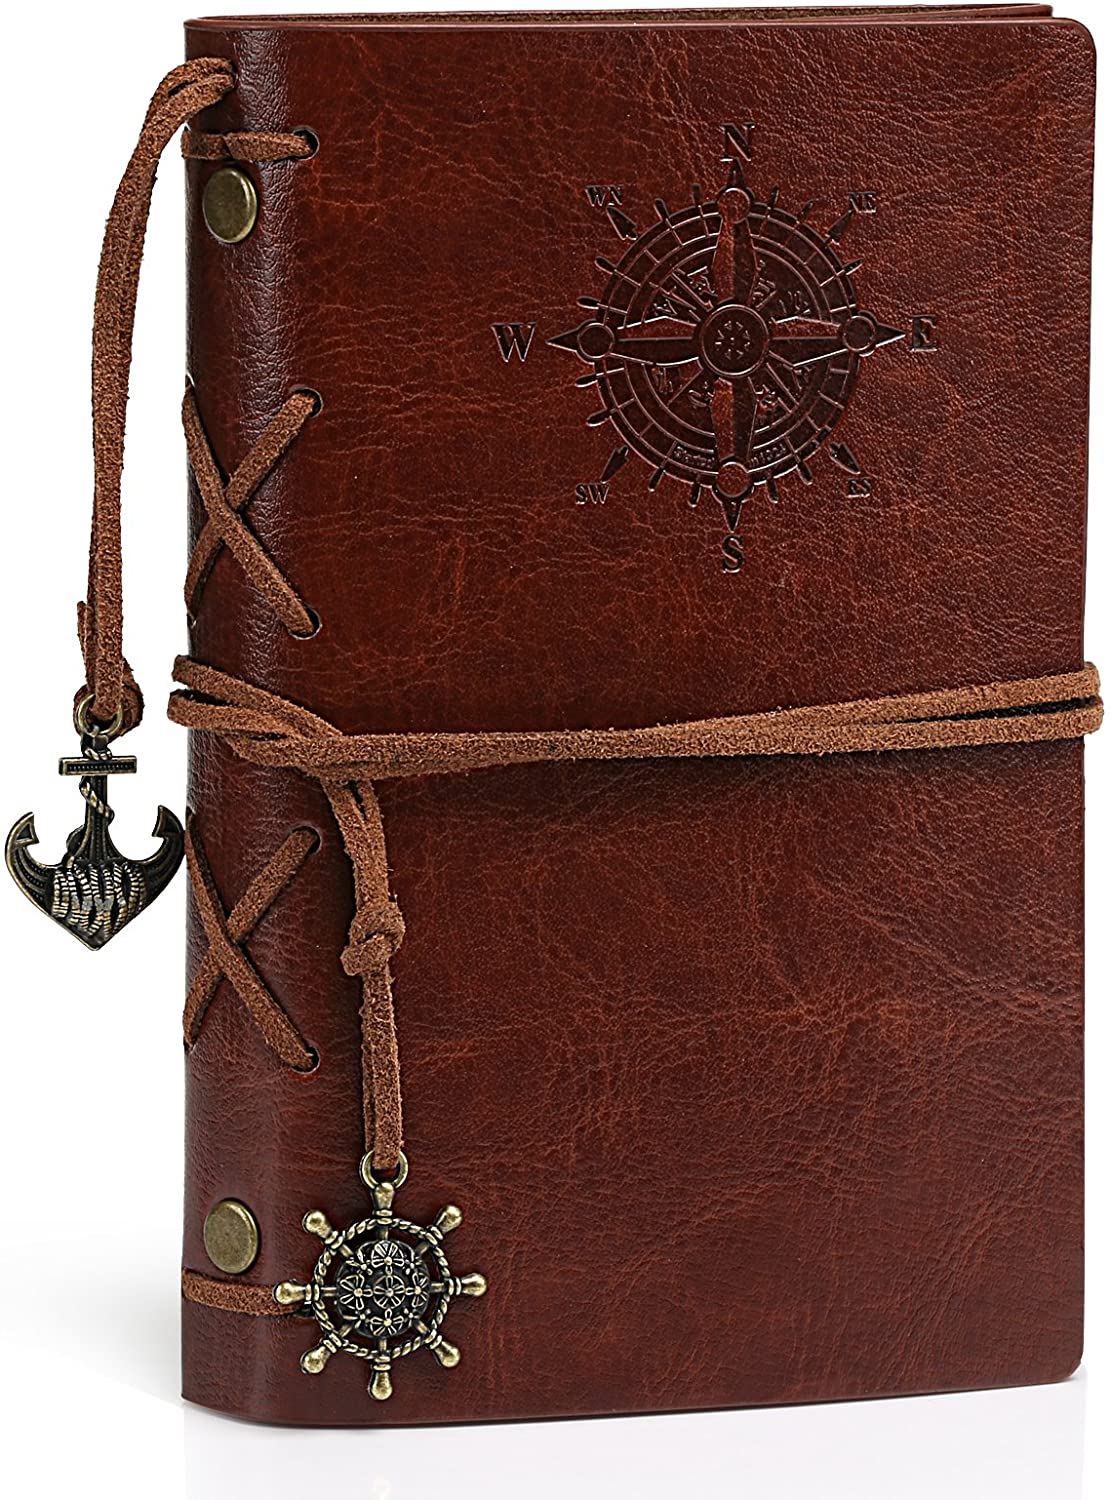 Kesoto A7 Size 5.9X 3.9 Refillable Leather Travel Journal Notebook - with 1 Extra Refill, Vintage Nautical Spiral String Unlined Notepad Portable Personalized Diary with Classic Embossed Cover